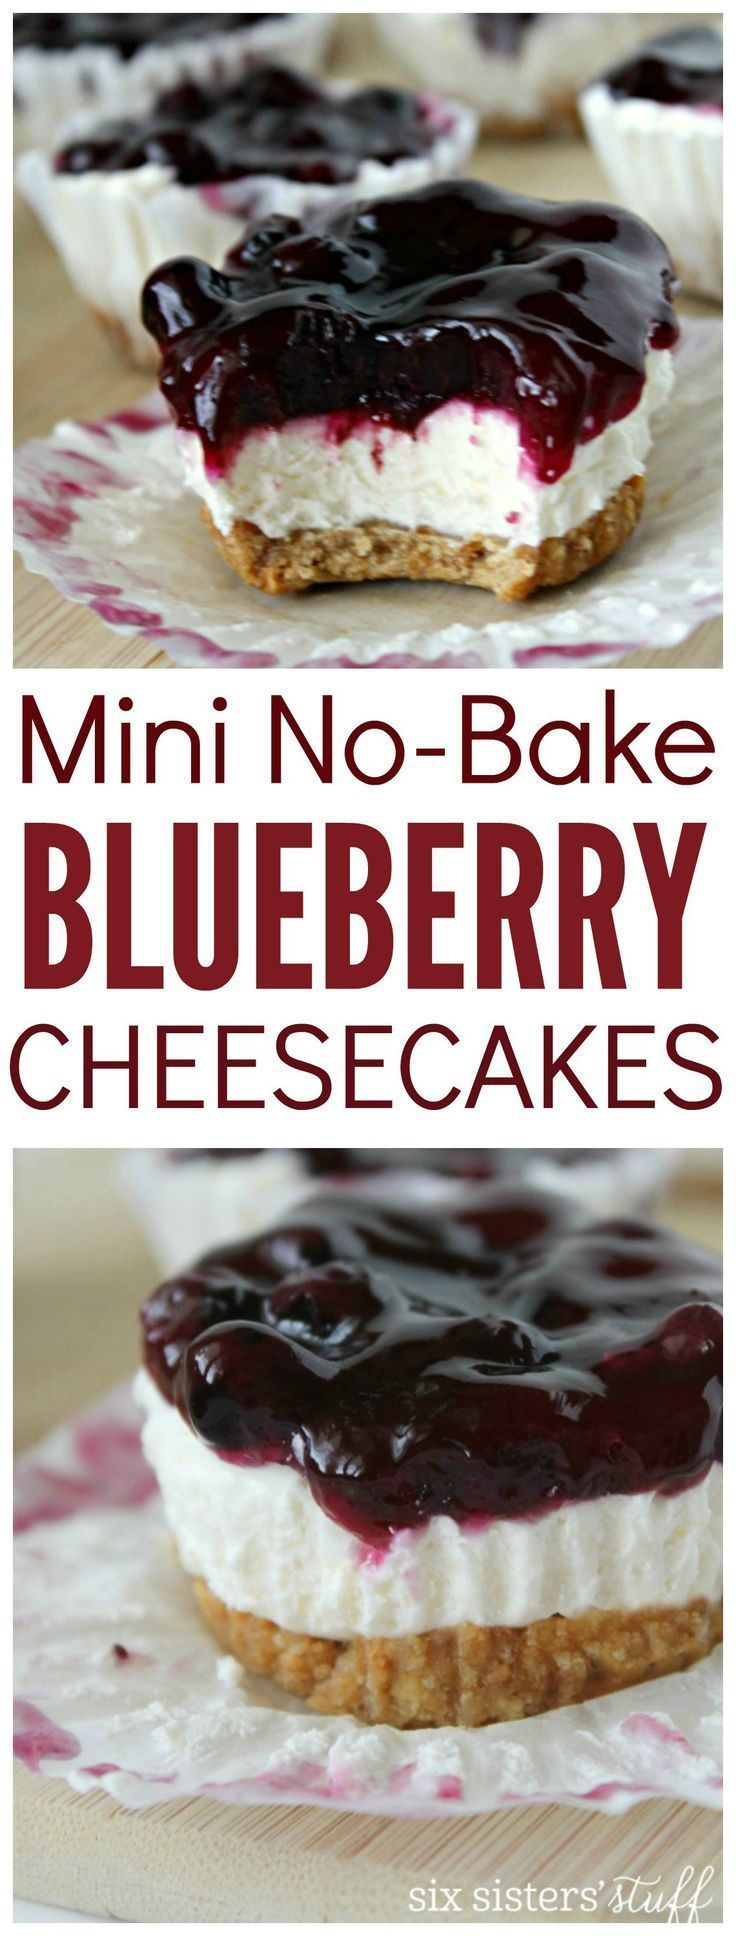 Mini No Bake Blueberry Cheesecakes from http://SixSistersStuff.com | This creamy, personal size dessert isn't just cute but tastes amazing. A tempting dessert recipe for any holiday or get together.